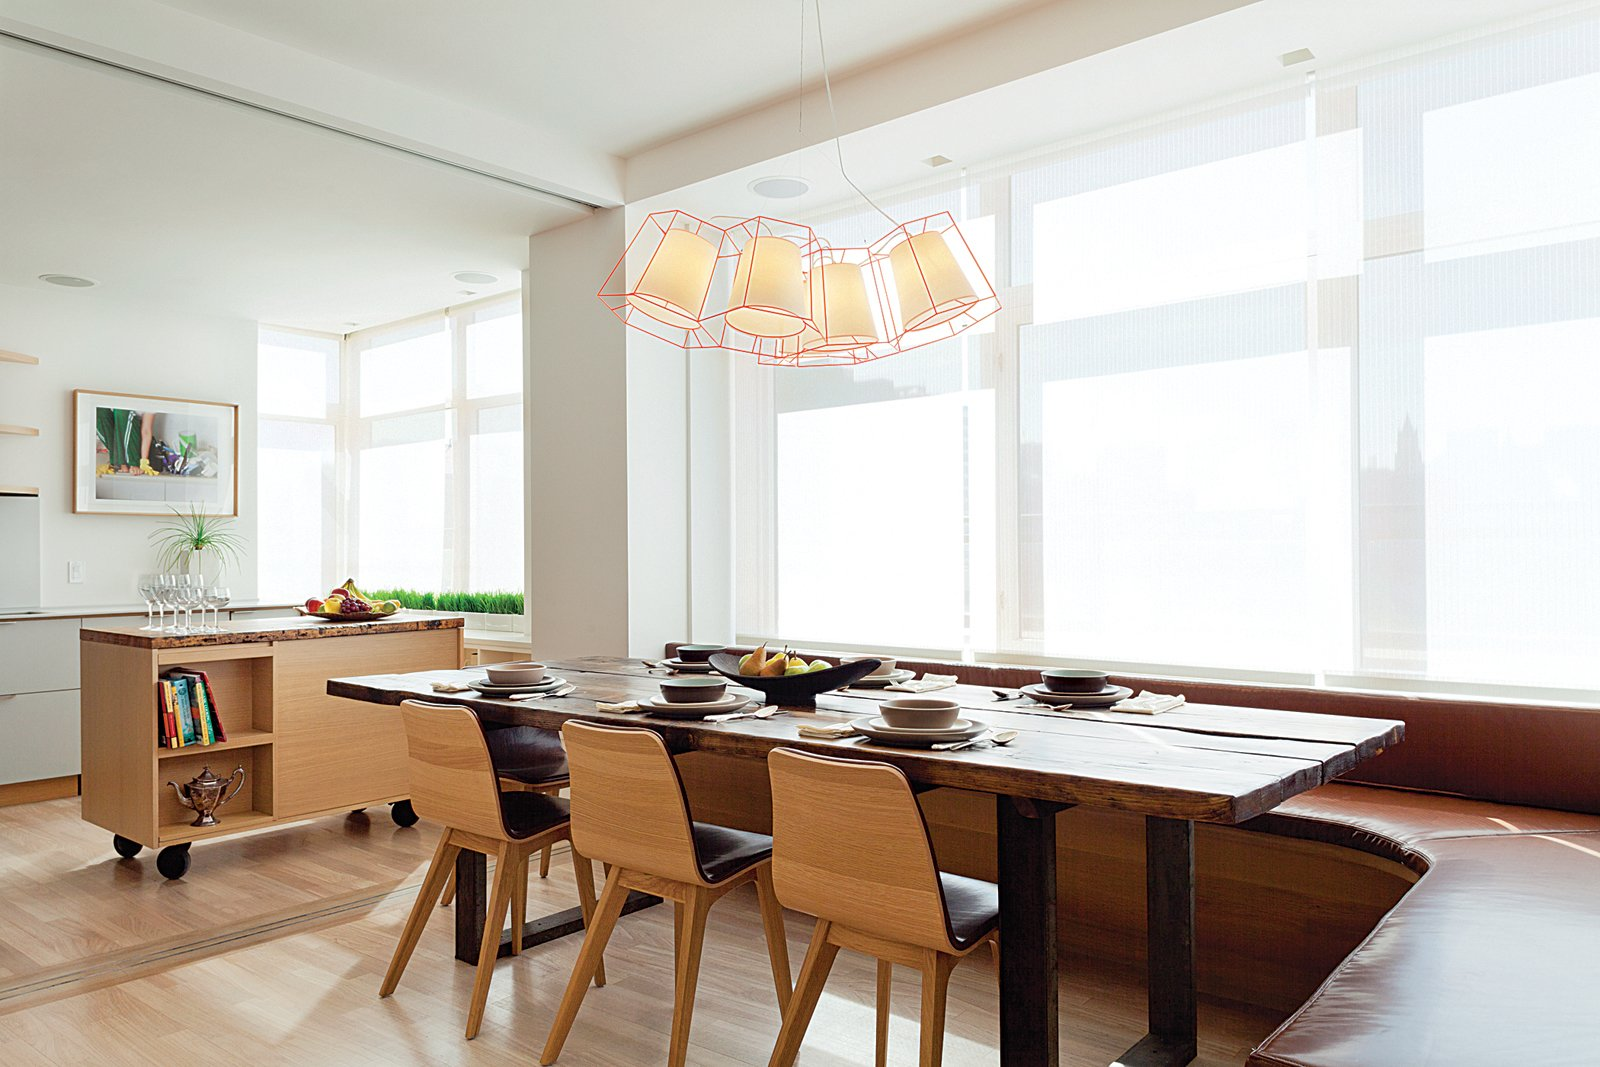 """Dining Room, Pendant Lighting, Chair, Table, and Light Hardwood Floor """"My directive was to create something very comfortable, calm, textural, and modern,"""" explains Reddy, who used a palette of reclaimed oak, bleached wood floors, blonde millwork, and white plaster. """"It's a space where you want to linger,"""" she says. An ExoFly pendant by Laurent Massaloux hangs above a custom WRK dining table surrounded by Morph side chairs by Zeitraum and a banquette covered in Glant's Liquid Leather.  Lovely NYC Abodes That Will Give You Apartment Envy by Allie Weiss from Light Fixtures We Love"""